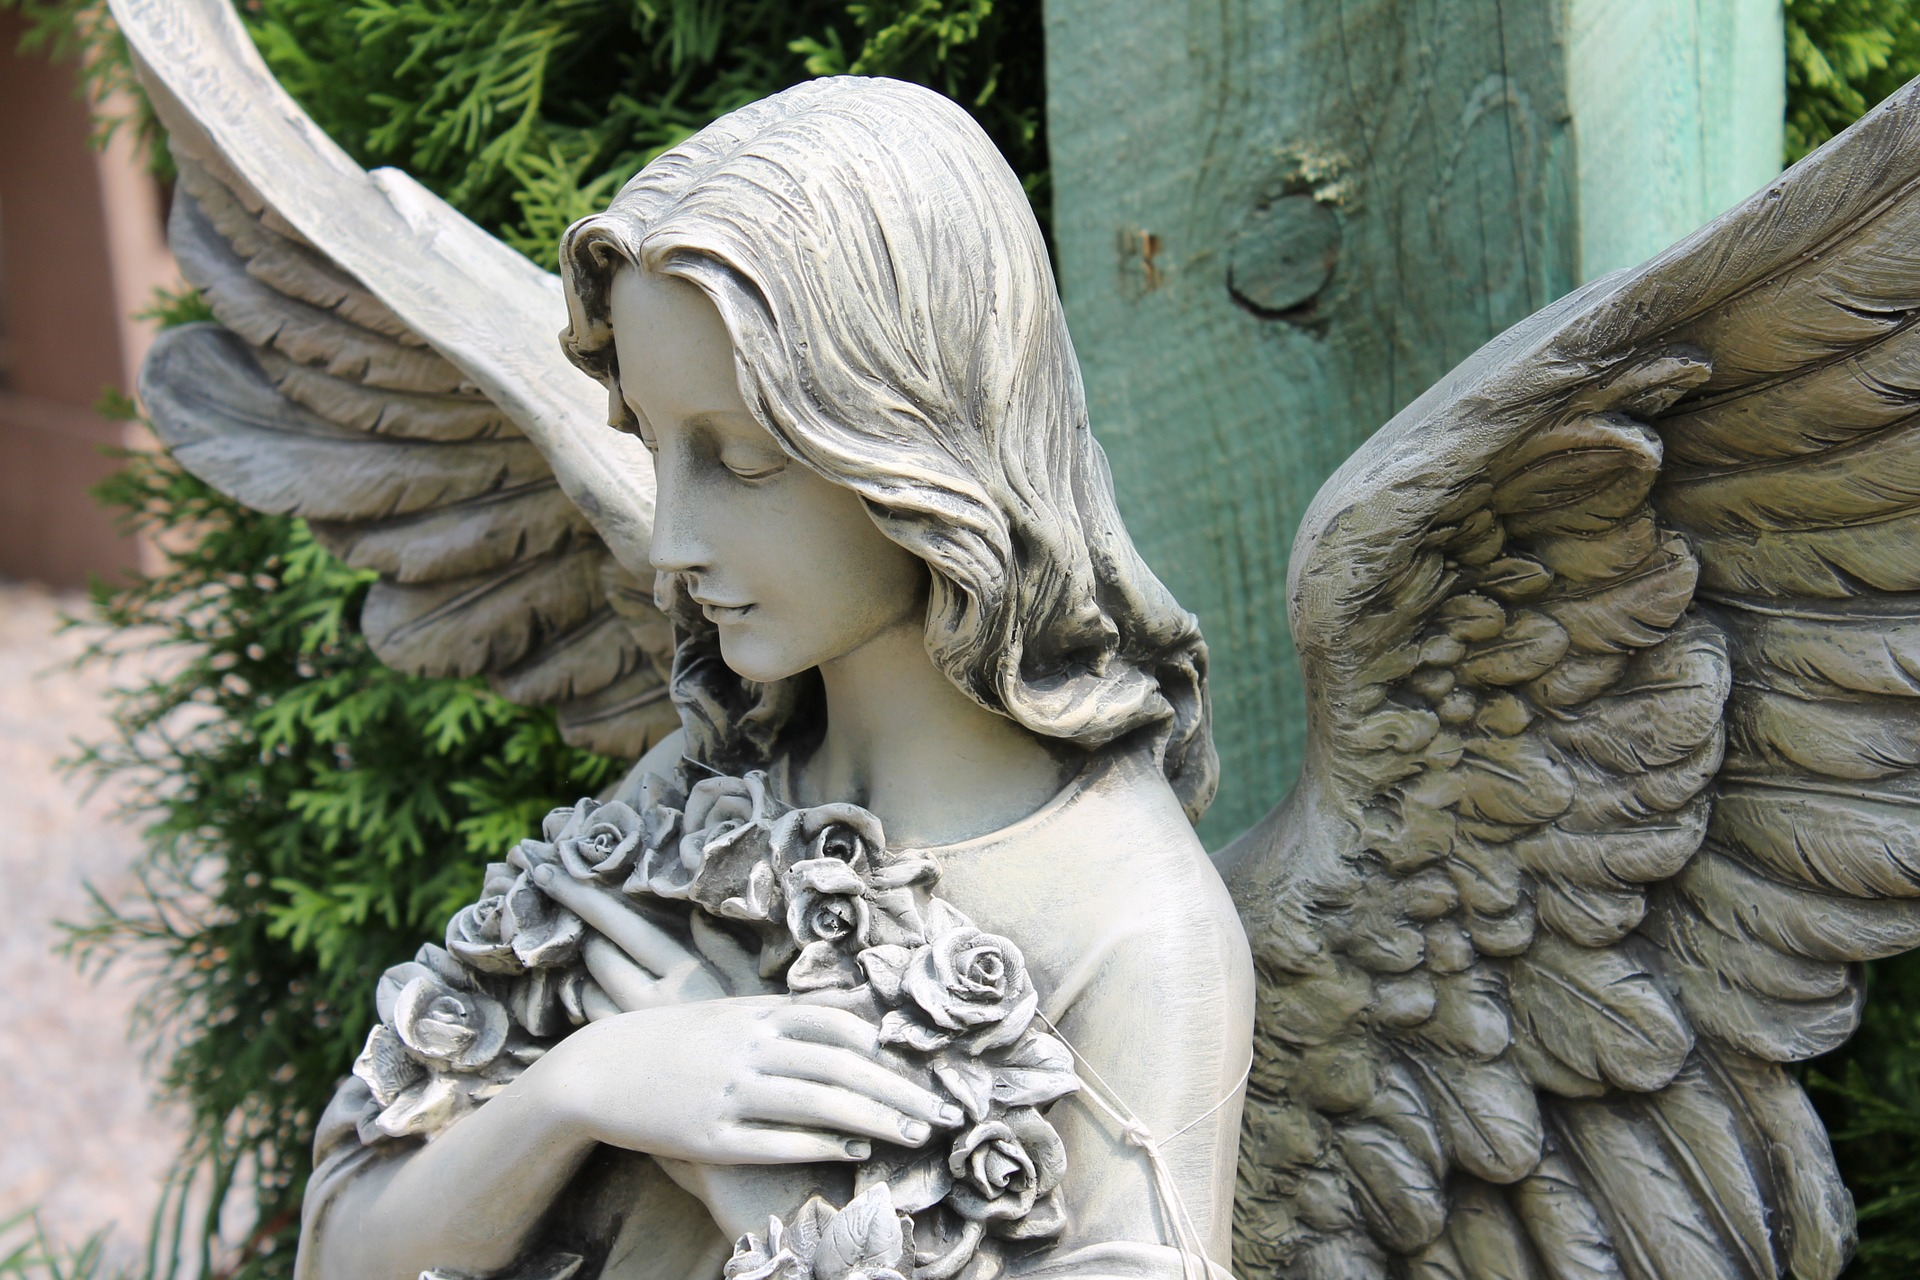 Garden angel | Stock image, St. George News